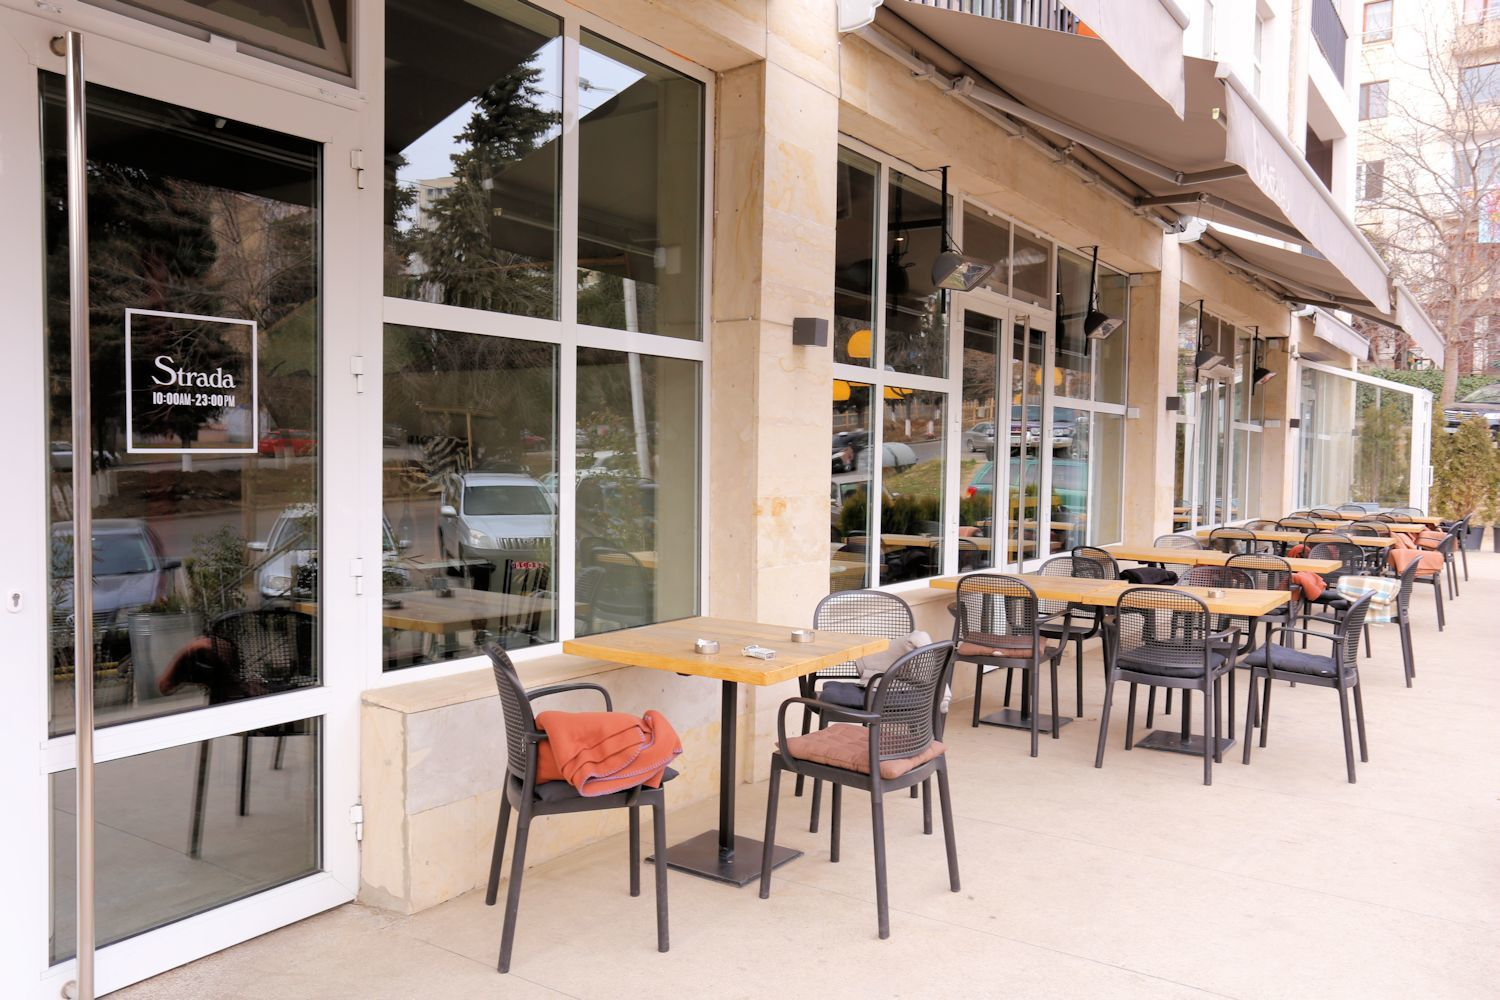 Outside seats in Strada cafe